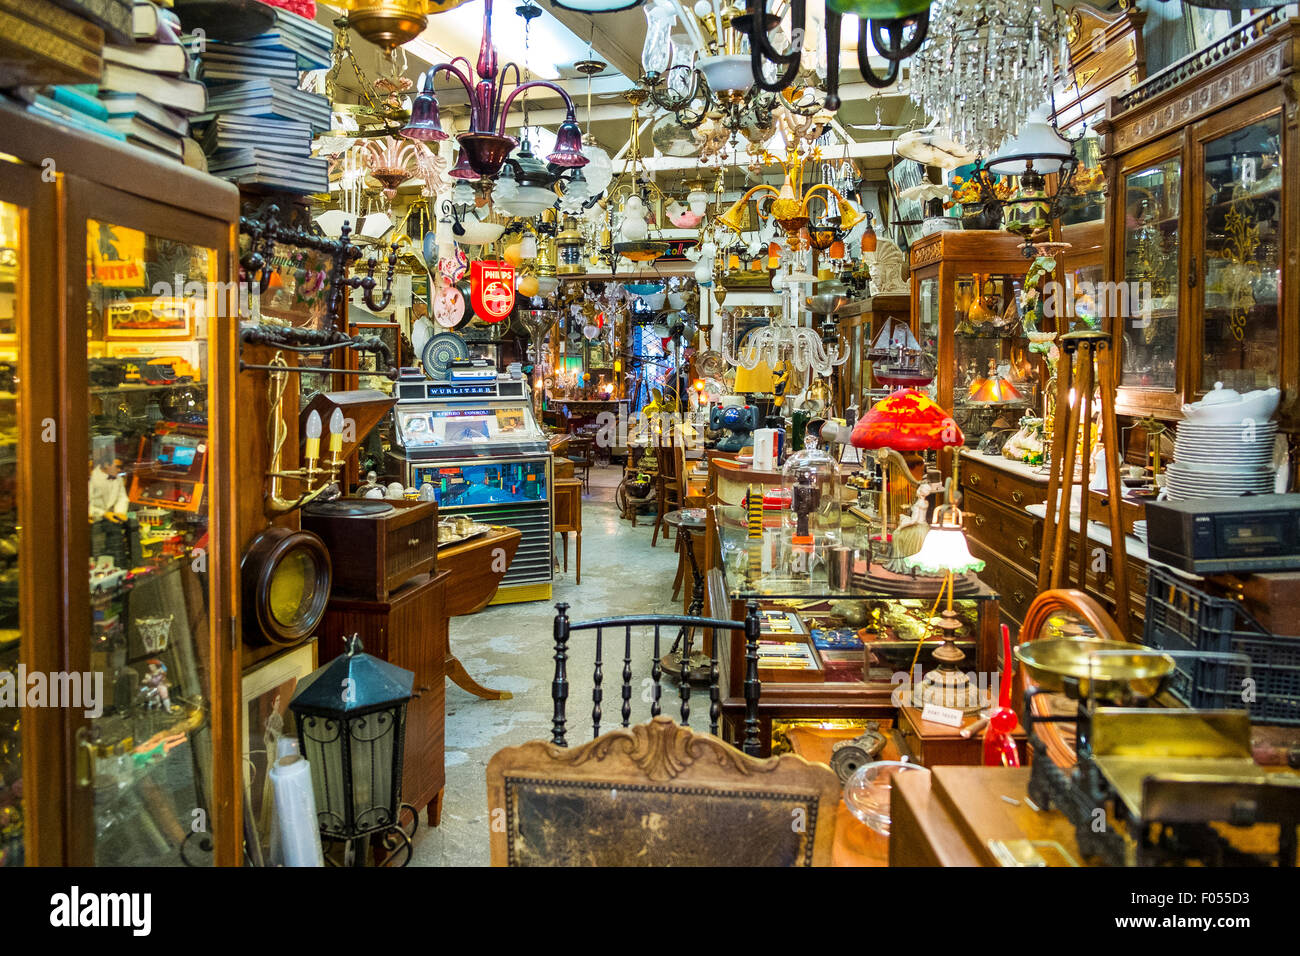 interior junk antique bric-a-brac collectible shop collectibles antiques loads of stuff crammed - Stock Image